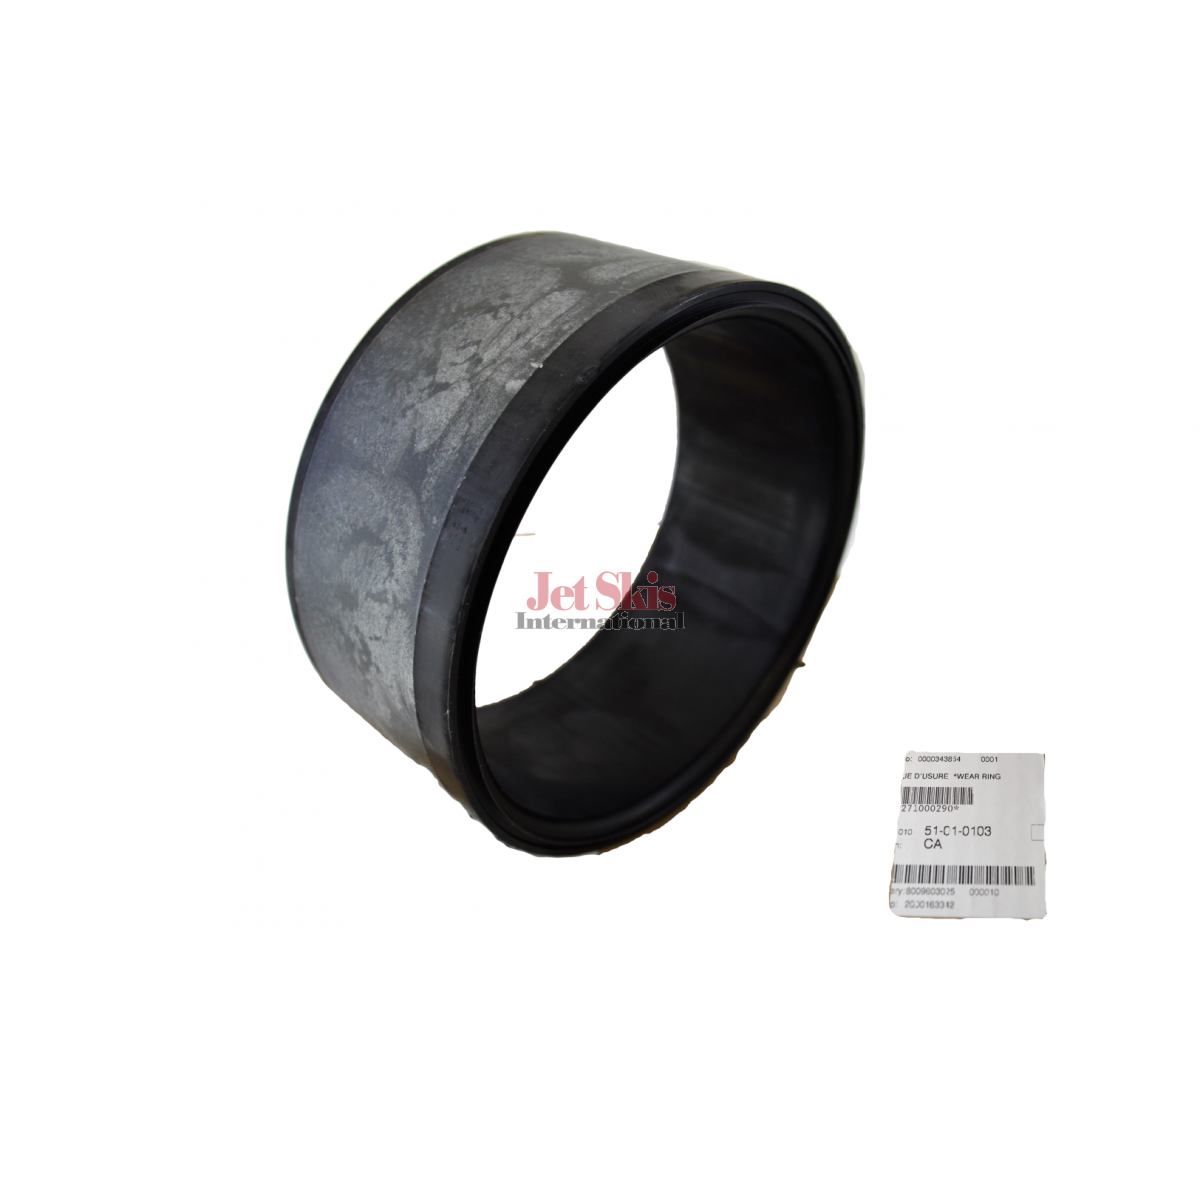 Sea Doo Wear Ring 271000290 For Jet Boats And Sea Doo Watercraft Jet Skis International